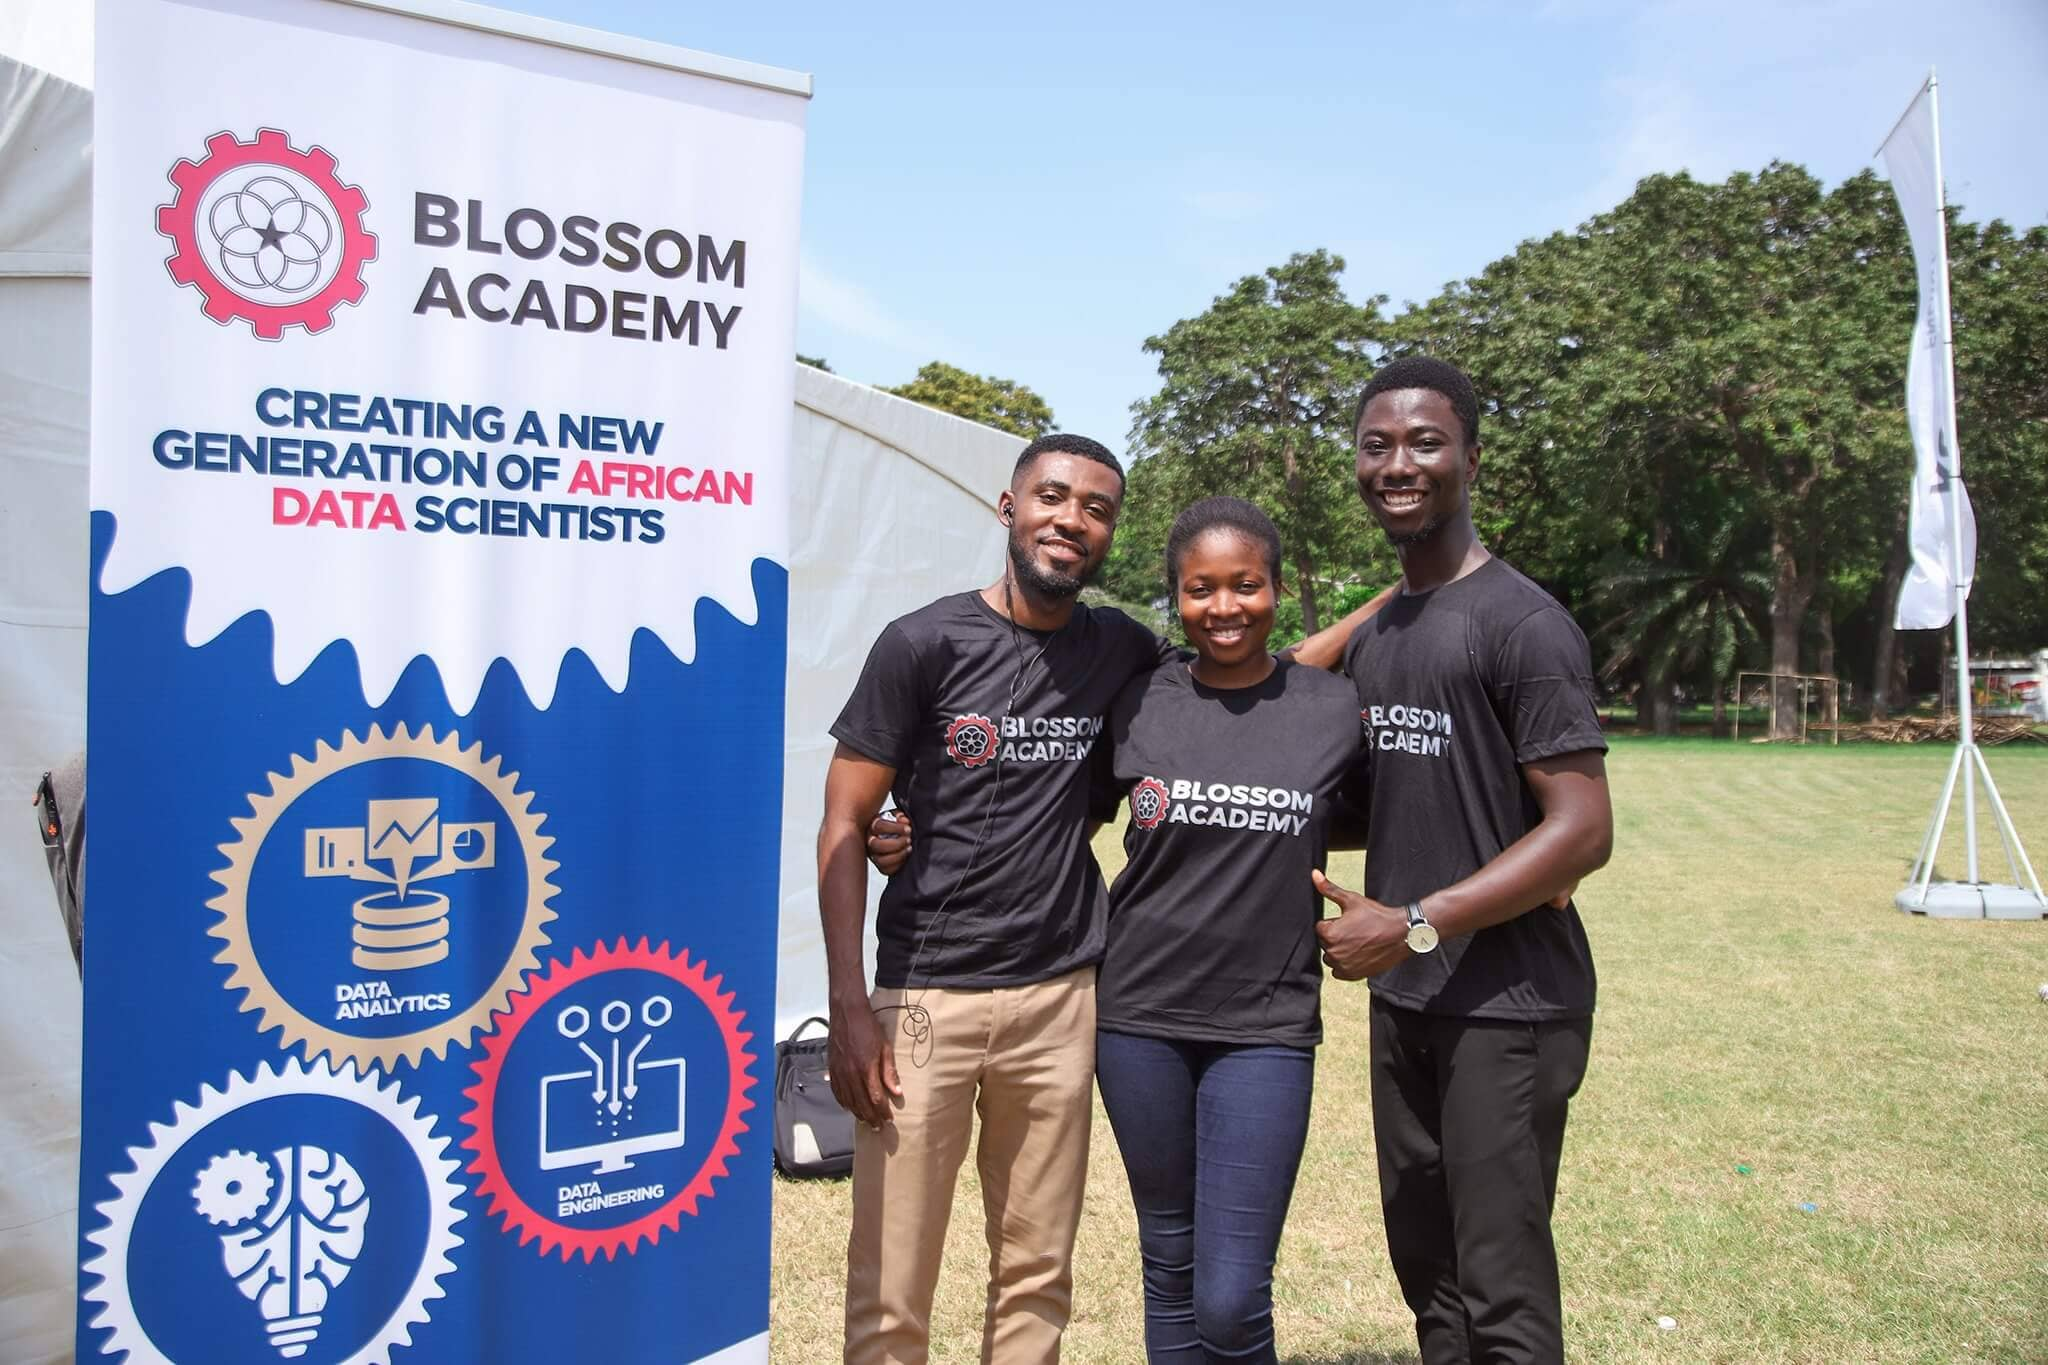 Jeph Acheampong Blossom Academy Built in Africa